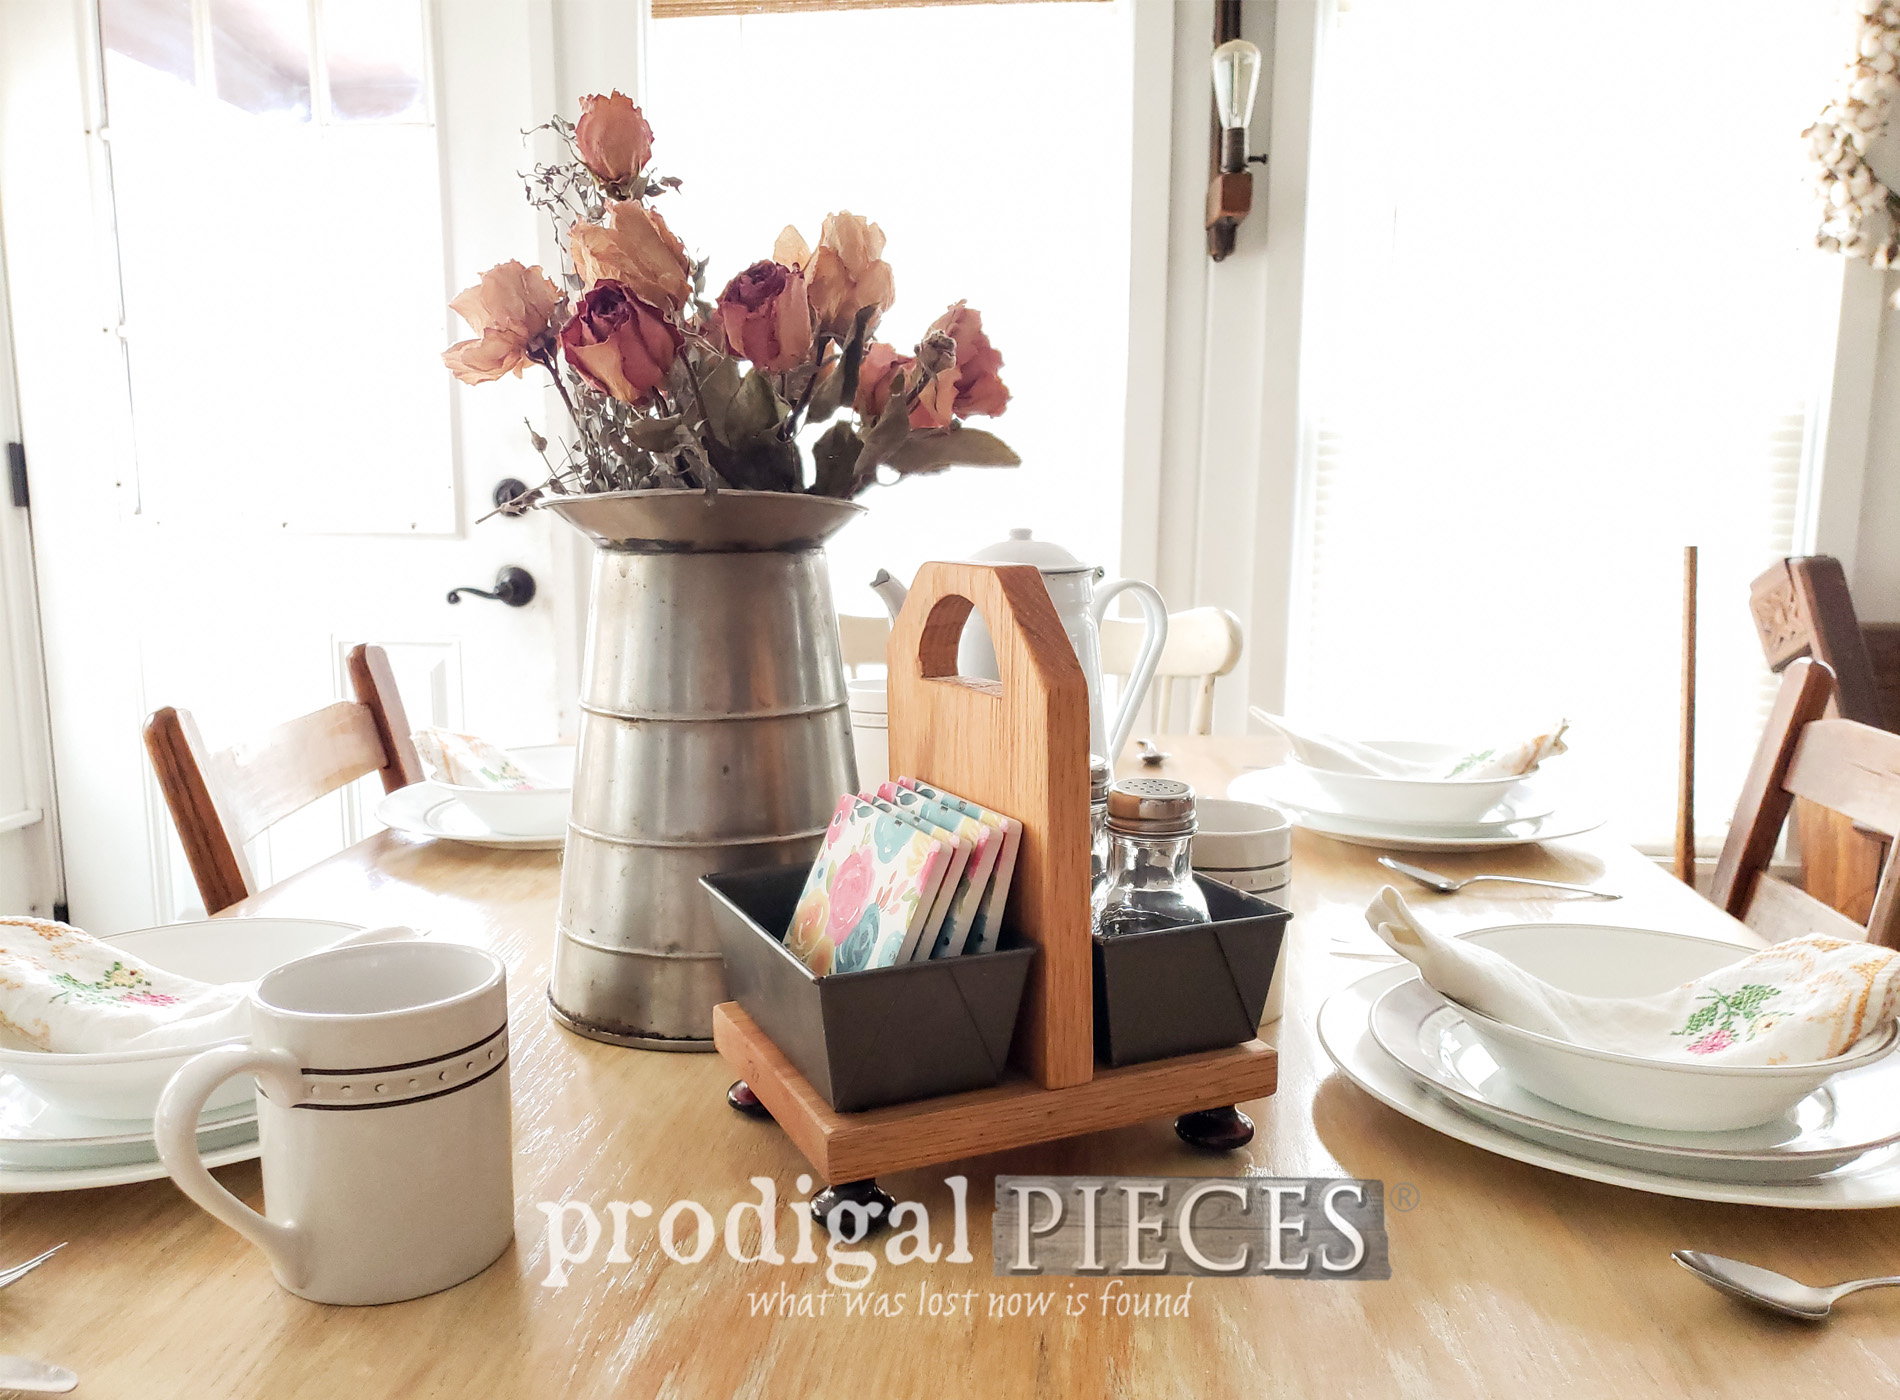 Featured Upcycled Bread Pan Caddy for Farmhouse Style Storage by Larissa of Prodigal Pieces | prodigalpieces.com #prodigalpieces #farmhouse #diy #storage #home #homedecor